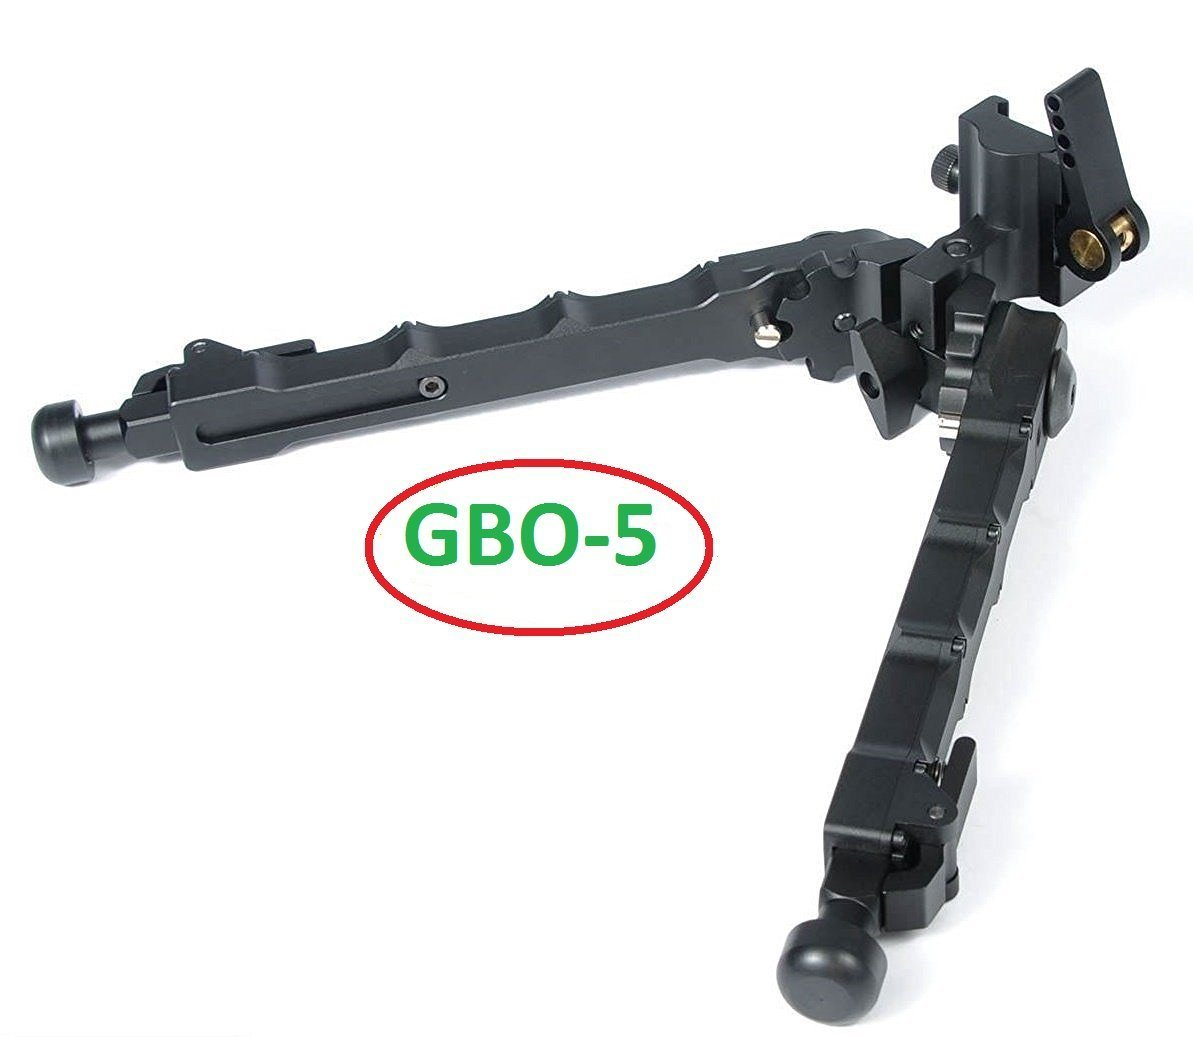 Green Blob Outdoors GBO - 5 QD Bipod Black Tactical Bipod 7.25-9 inches Quick Detachable Flat Adjustable Matte Black Bipods & Monopods Green Blob Outdoors